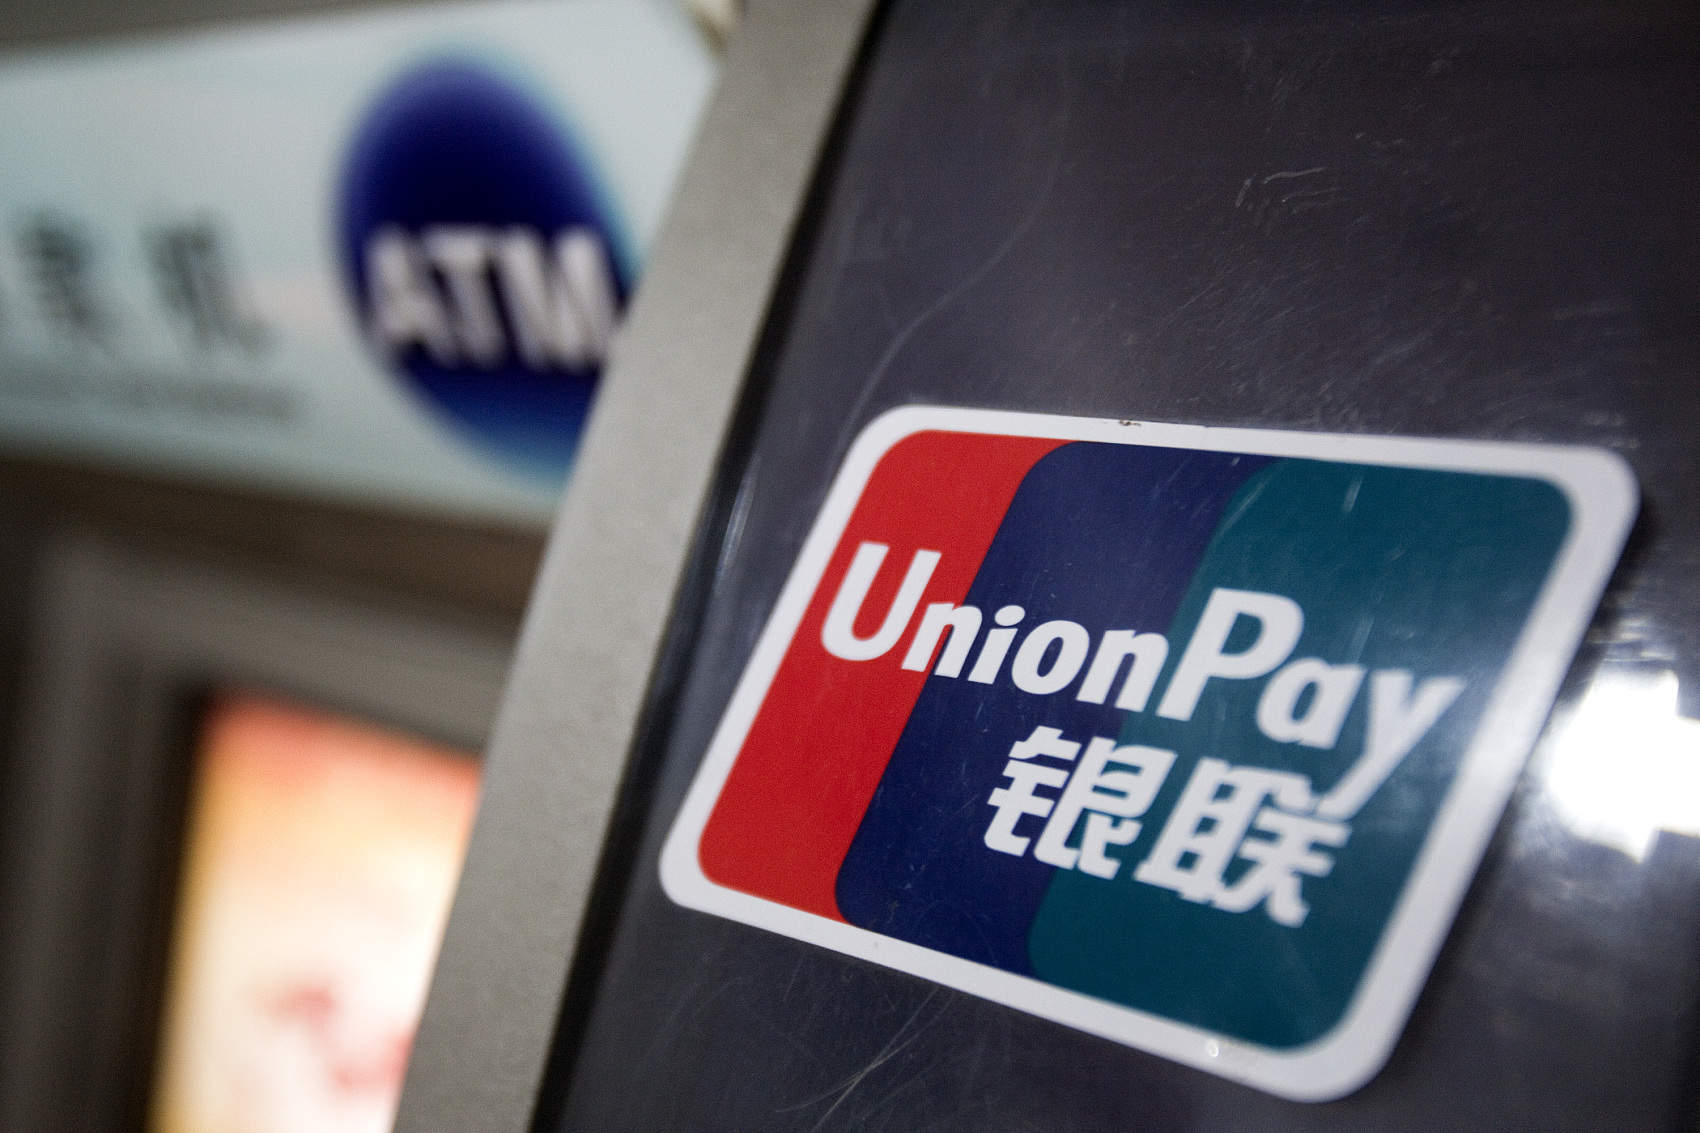 China UnionPay launches card for small, micro businesses